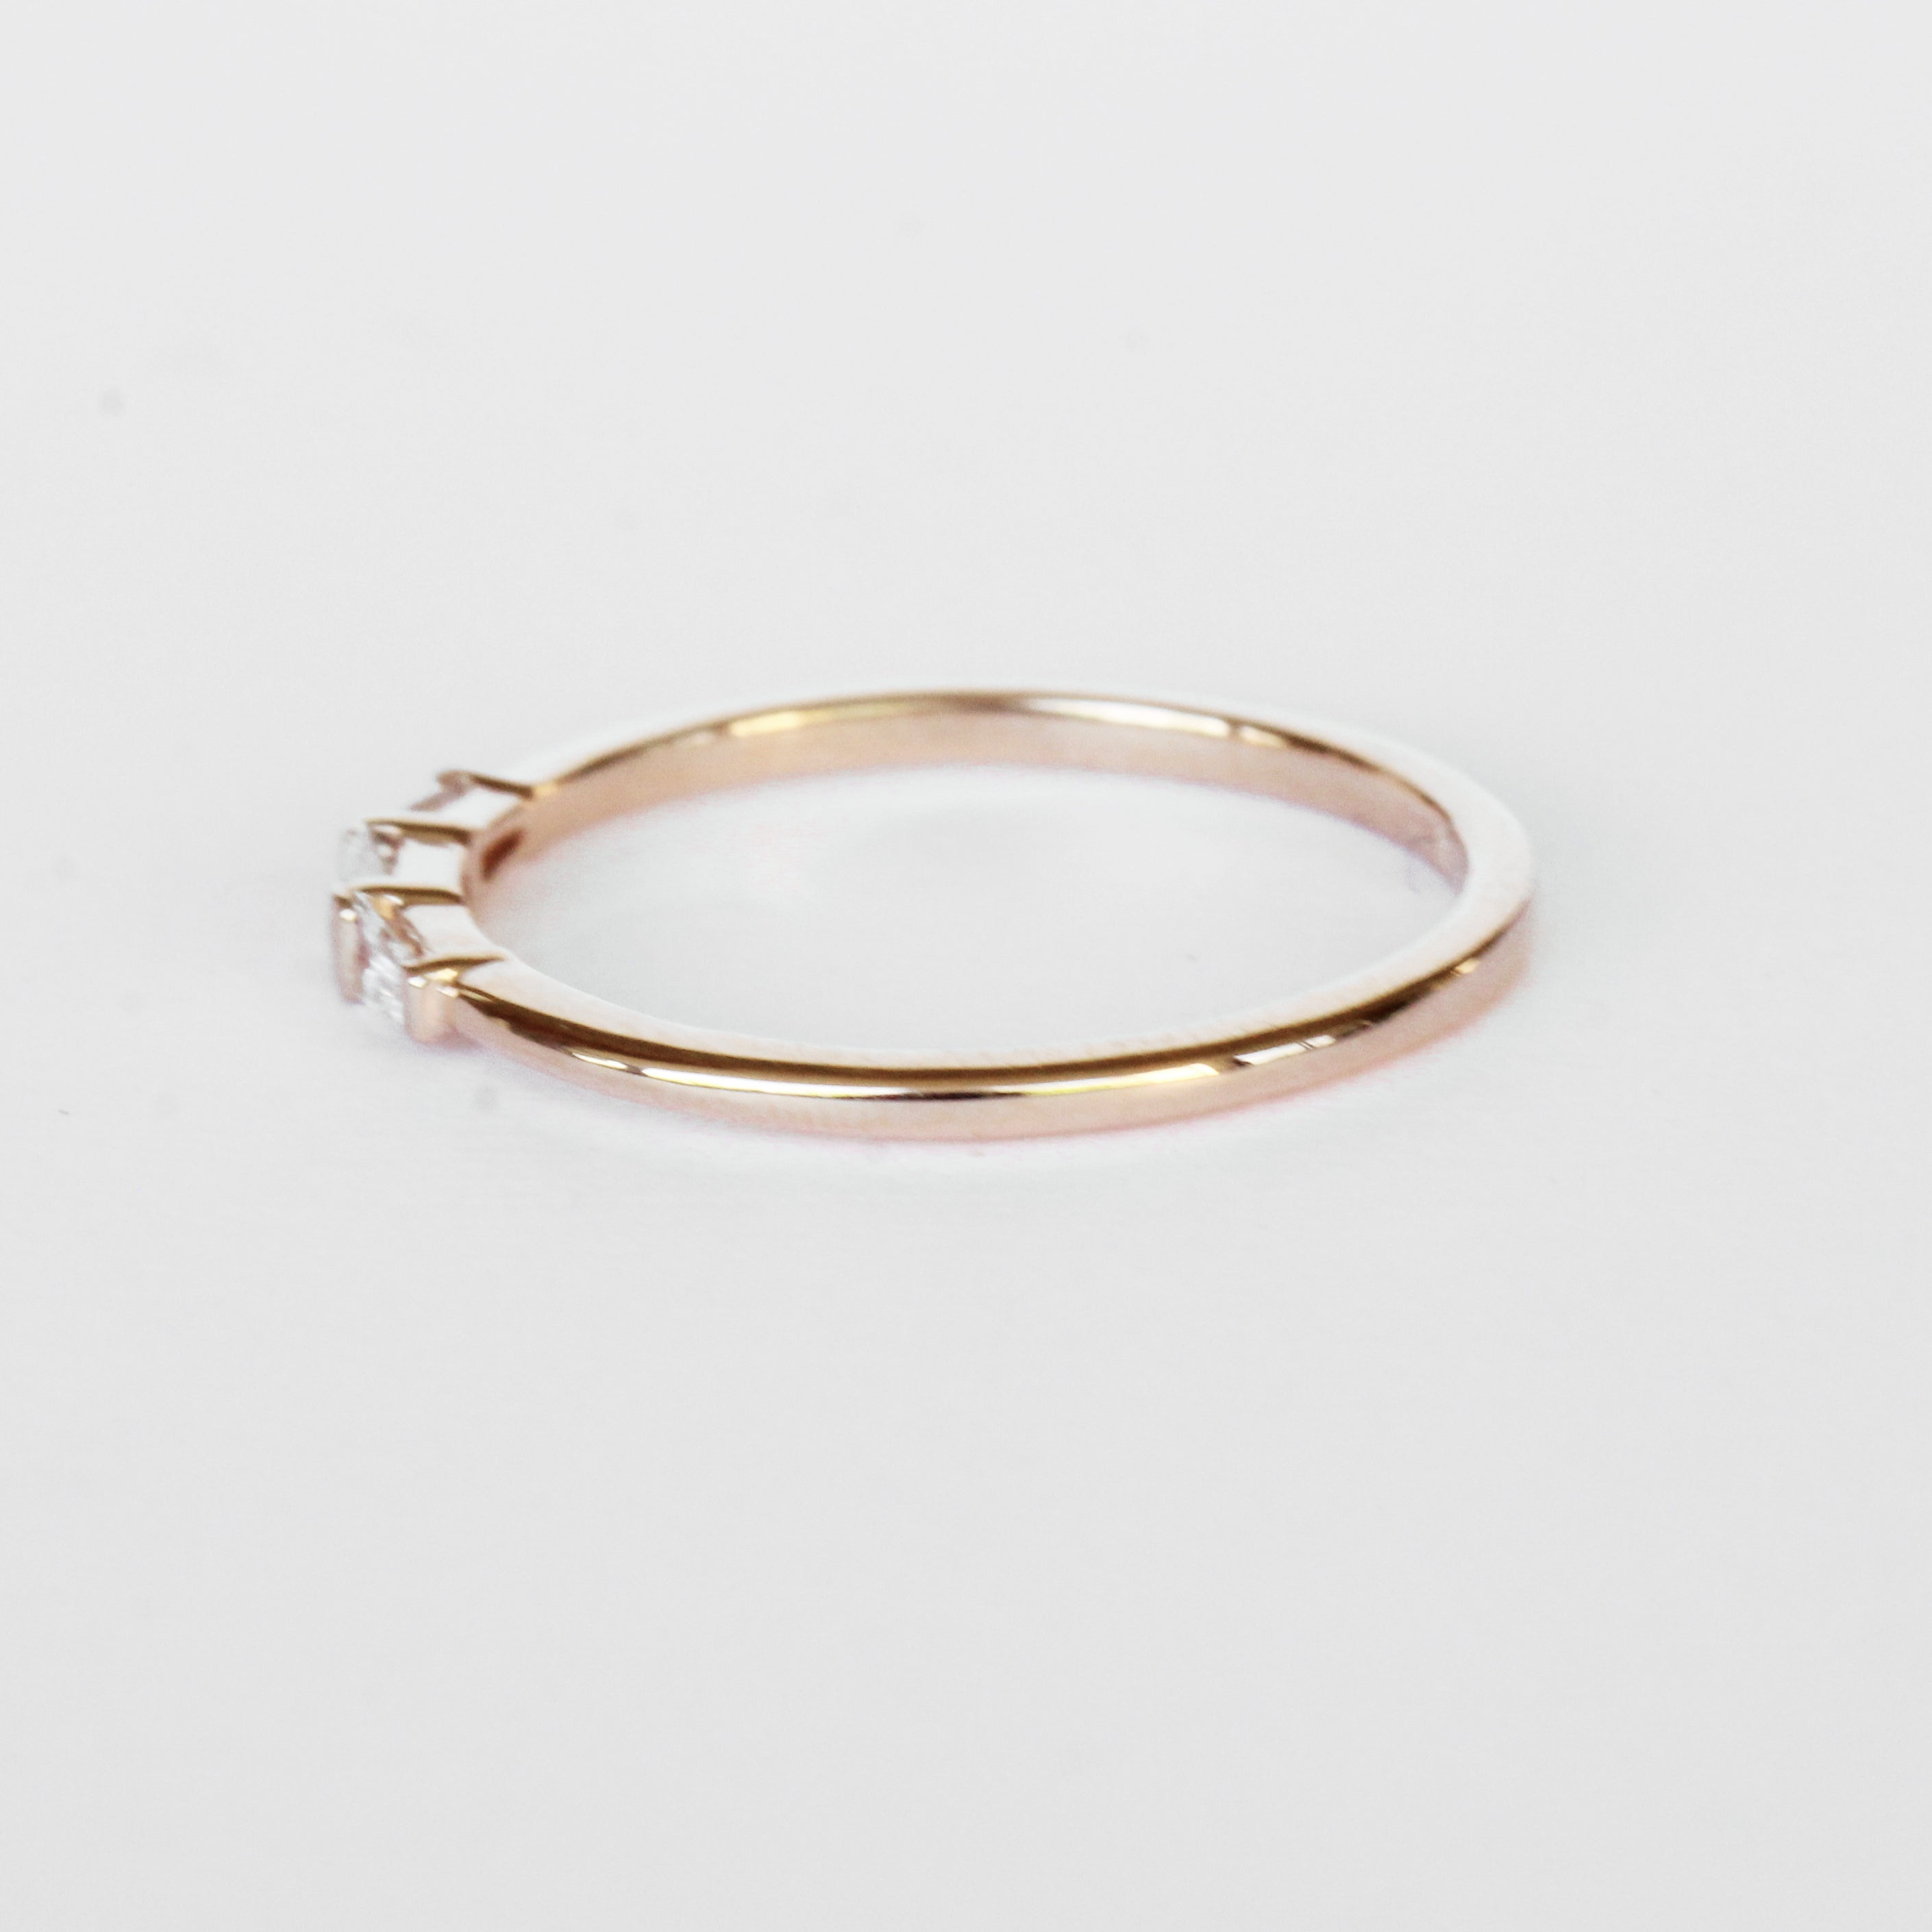 Woodsley Baguette Band Stackable Ring in Your Choice of 14k Gold - Celestial Diamonds ® by Midwinter Co.